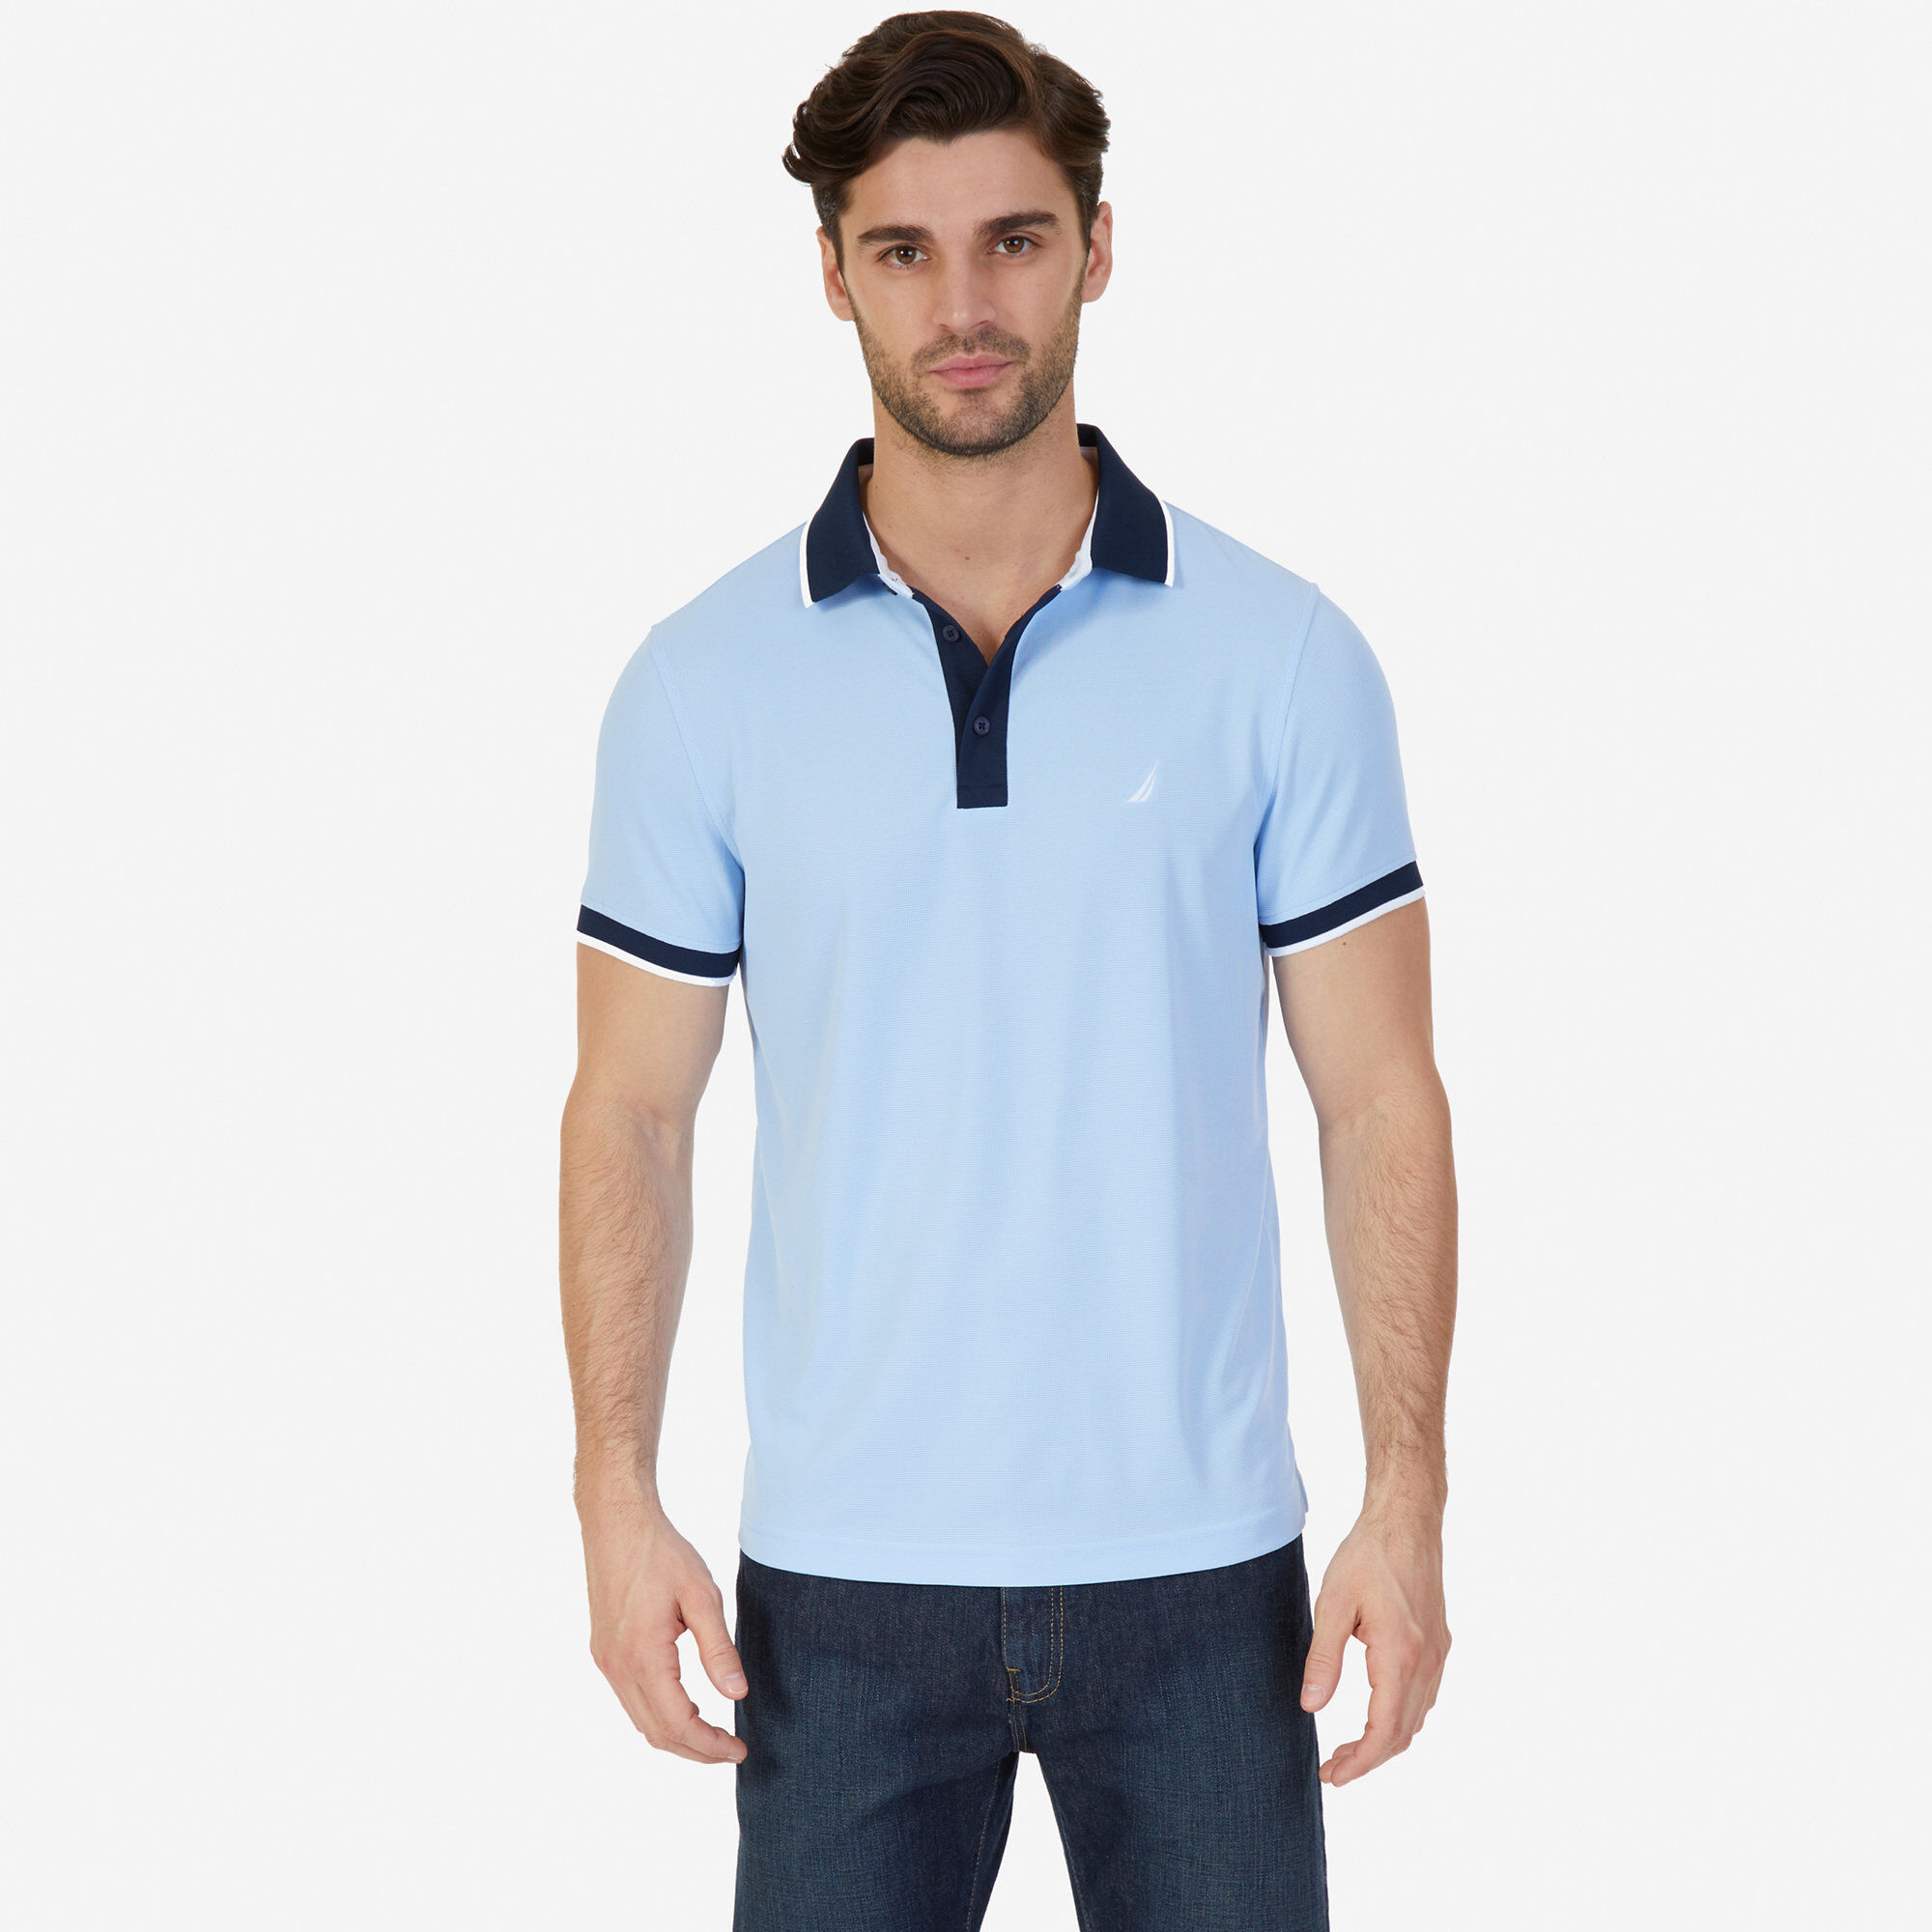 Lightweight Moisture Wicking and Quick Drying Nordhavn Yacht Crew Polo Shirt